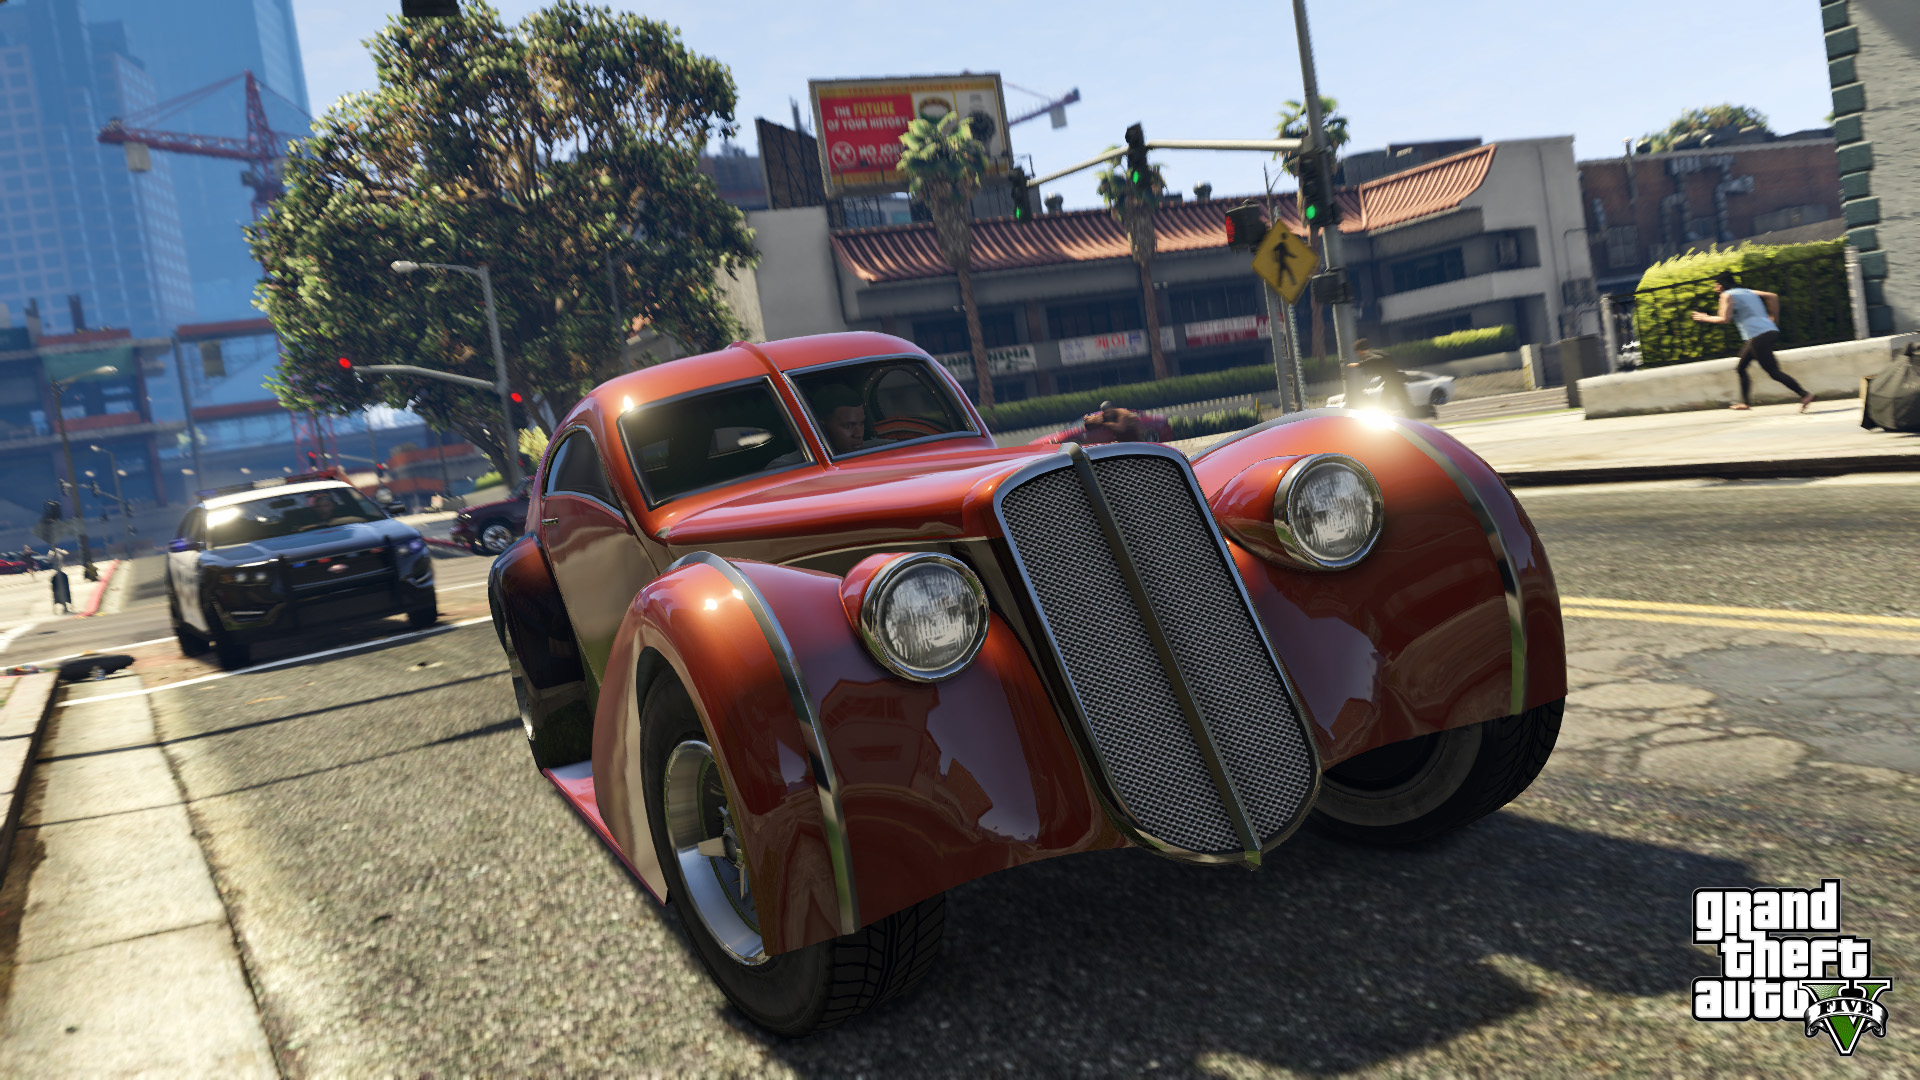 Grand Theft Auto V Release Dates and Exclusive Content ...